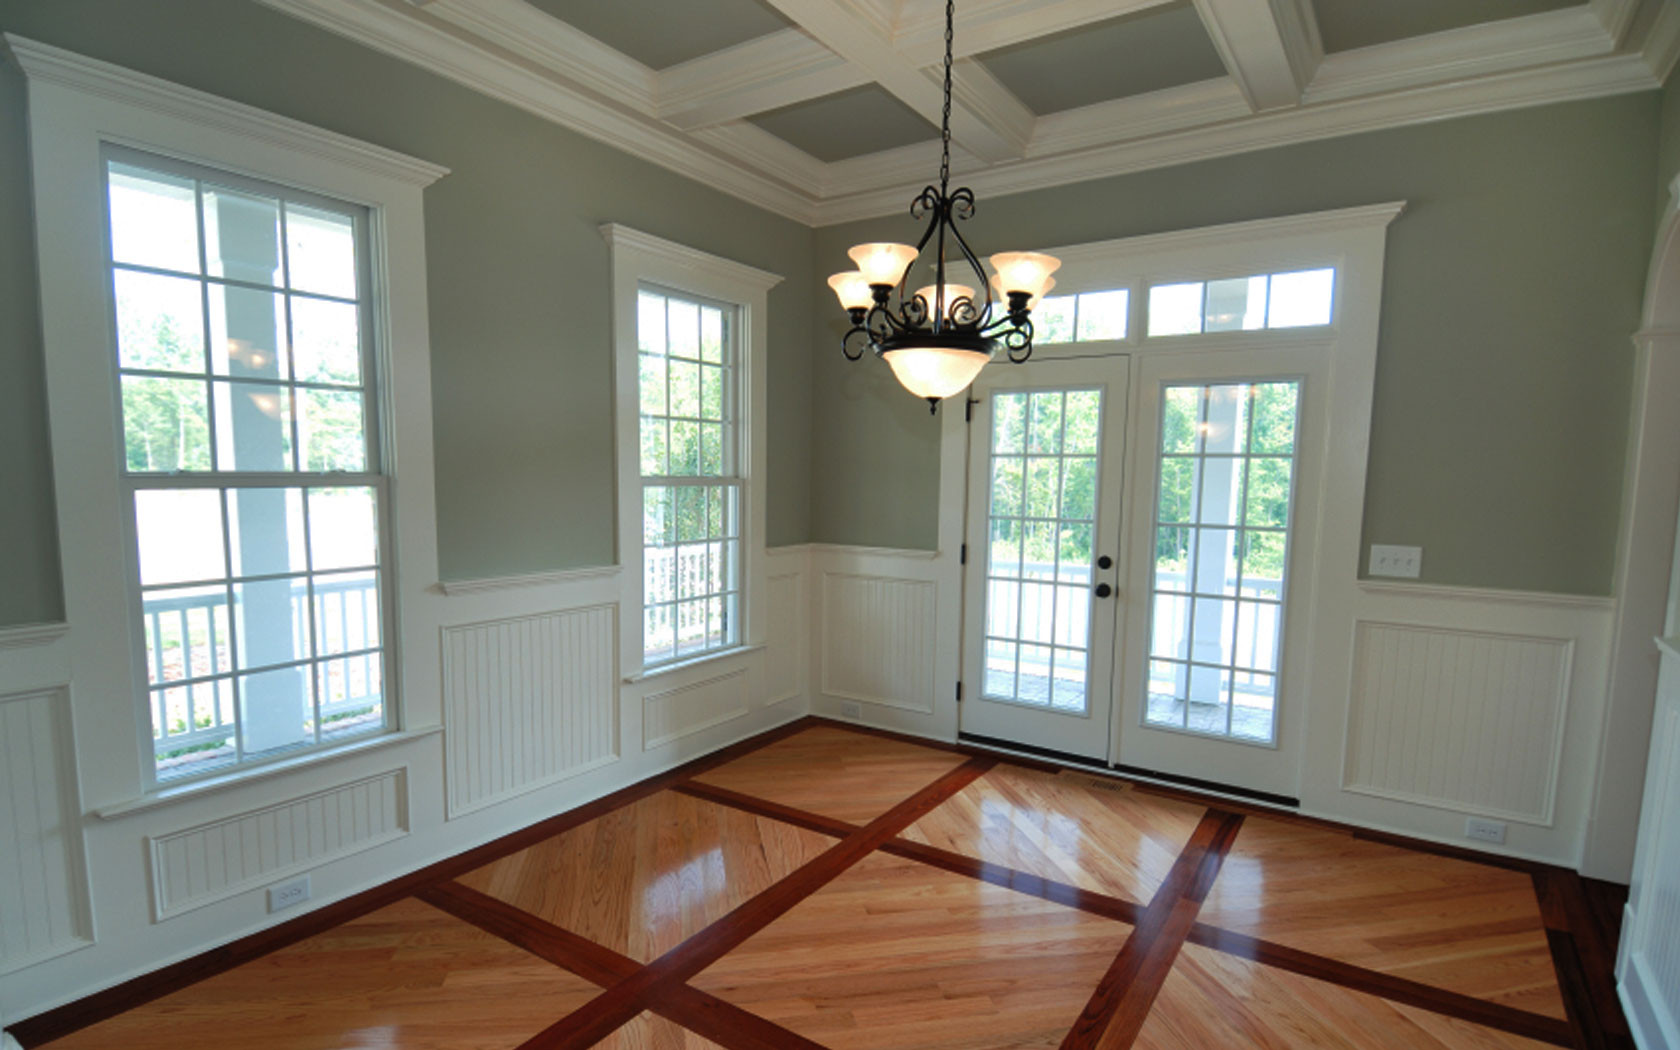 Best ideas about Interior Paint Colors . Save or Pin Interior Wall Paint Colors and Ideas Now.